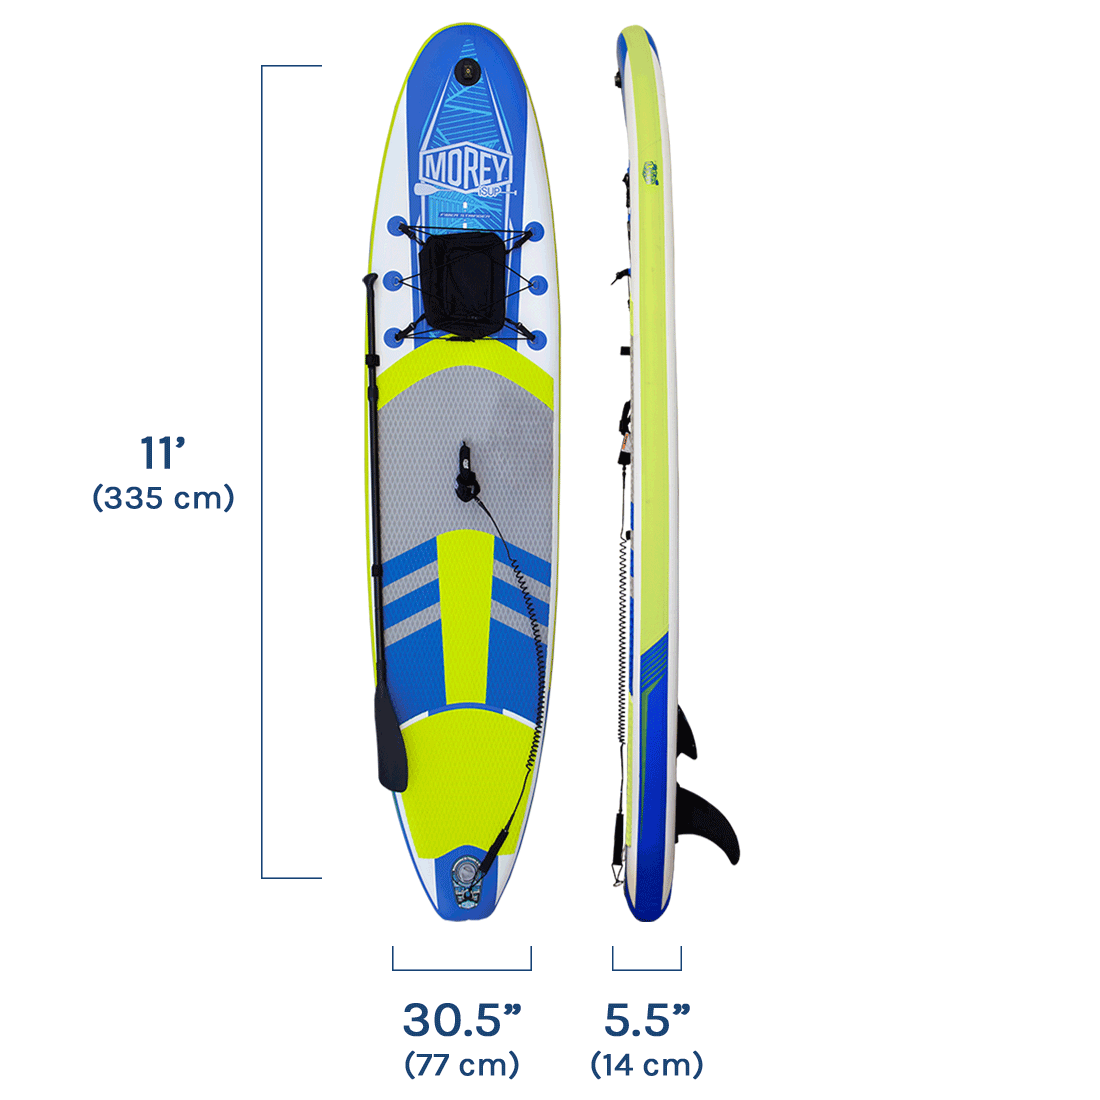 Morey SUP TRAVLR Product Specifications